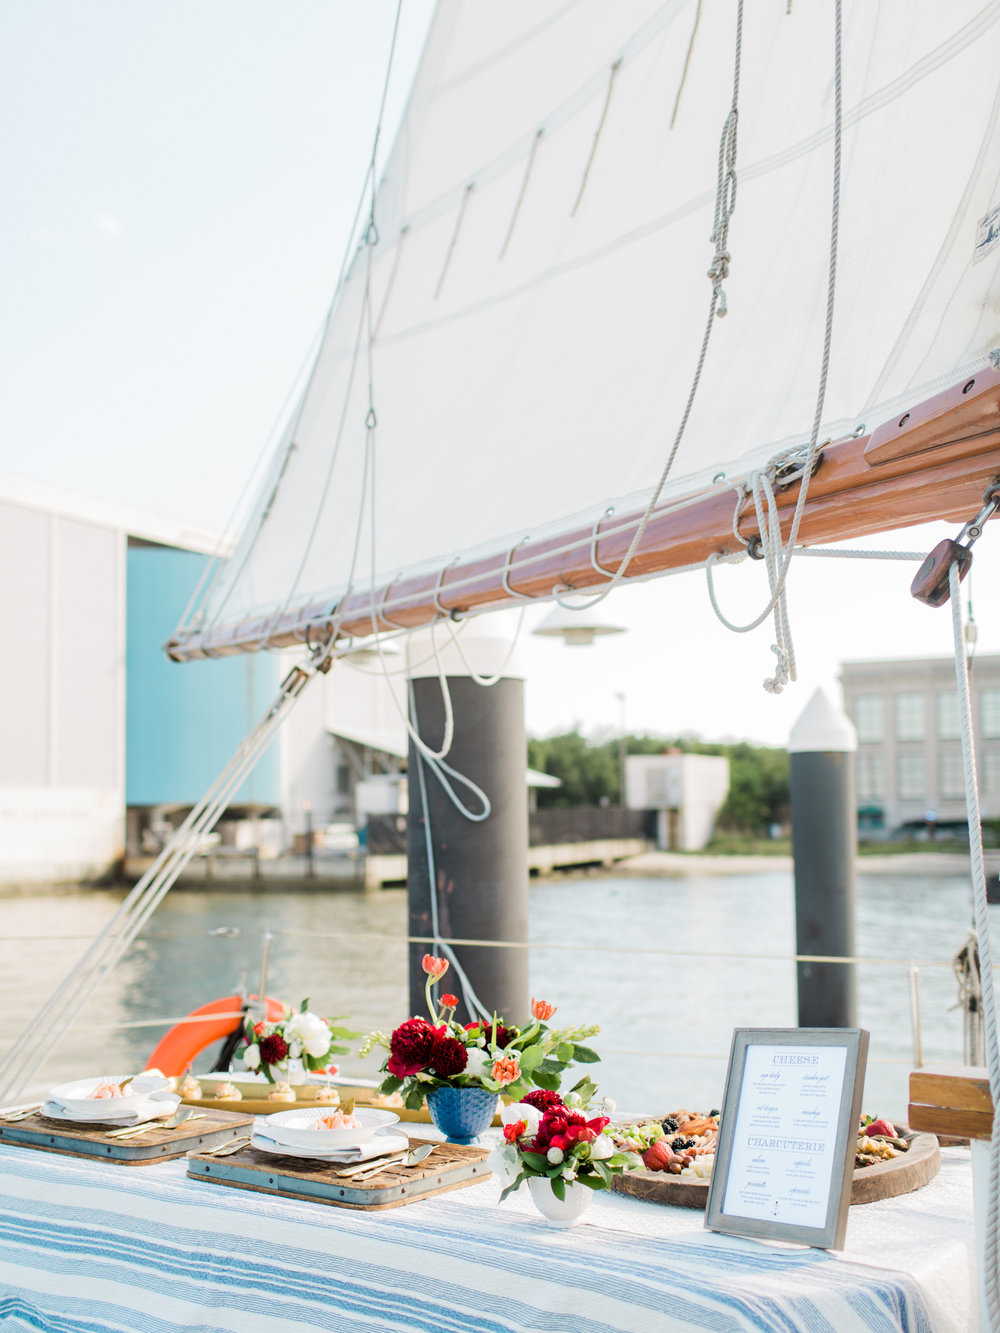 sailboat_elopement-152.jpg